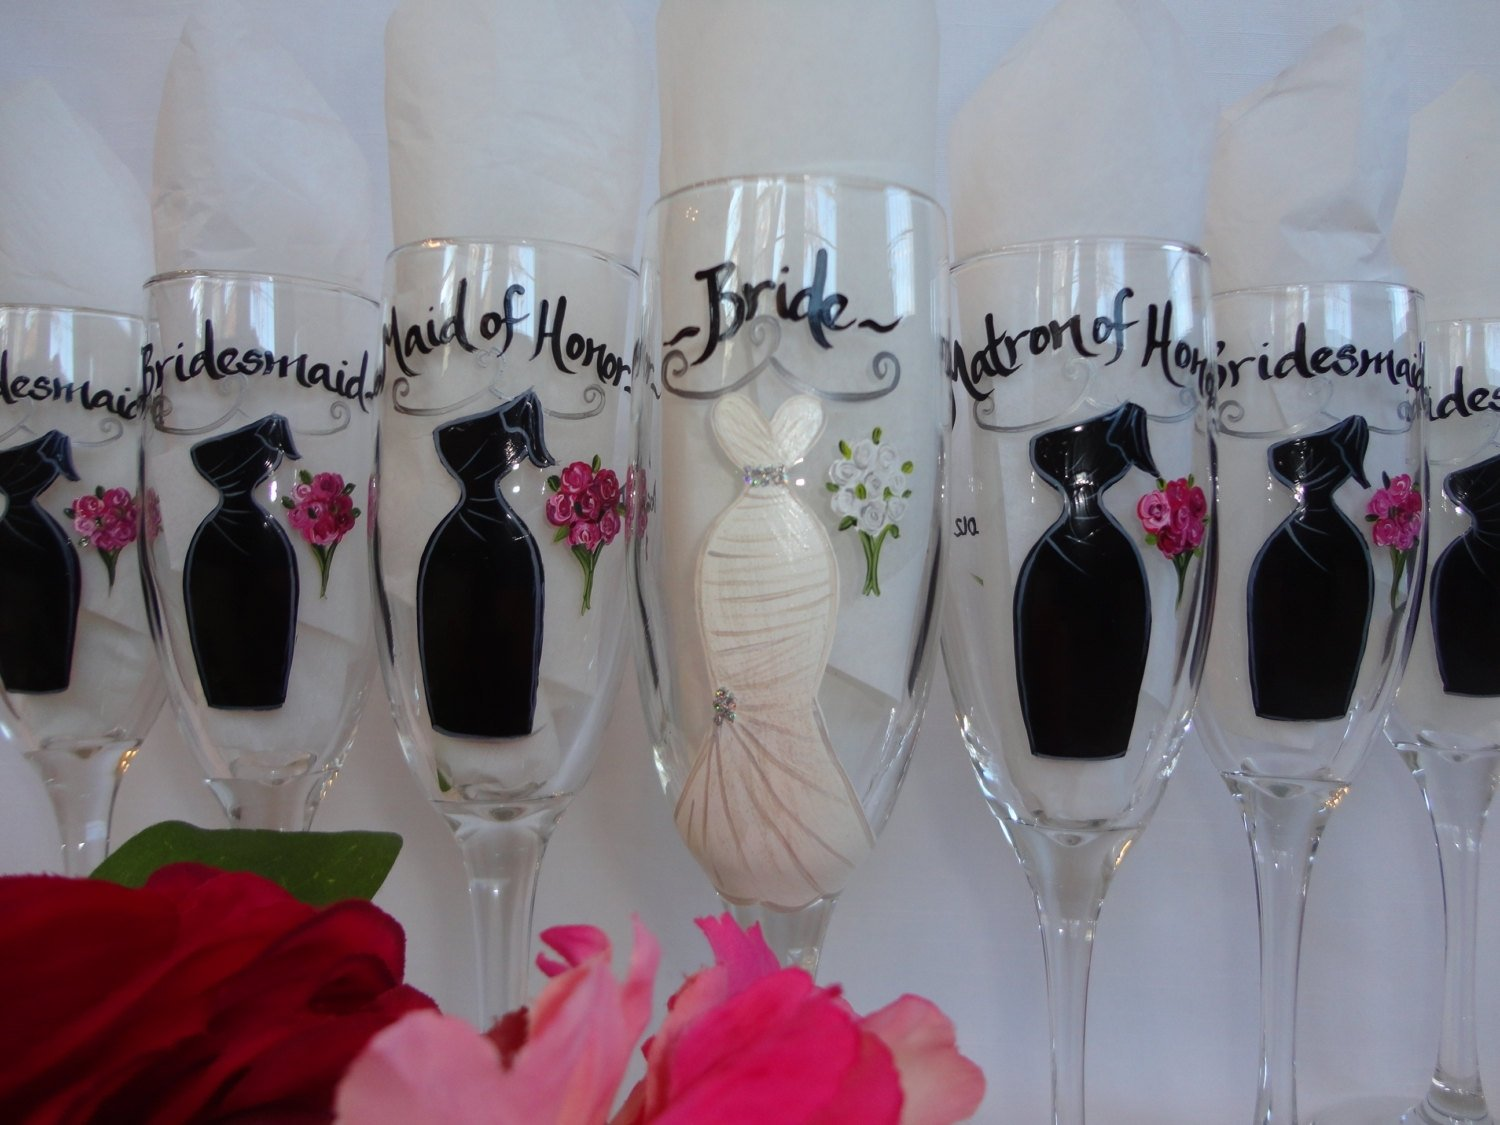 wedding accessories creative party gifts practical 50th anniversary